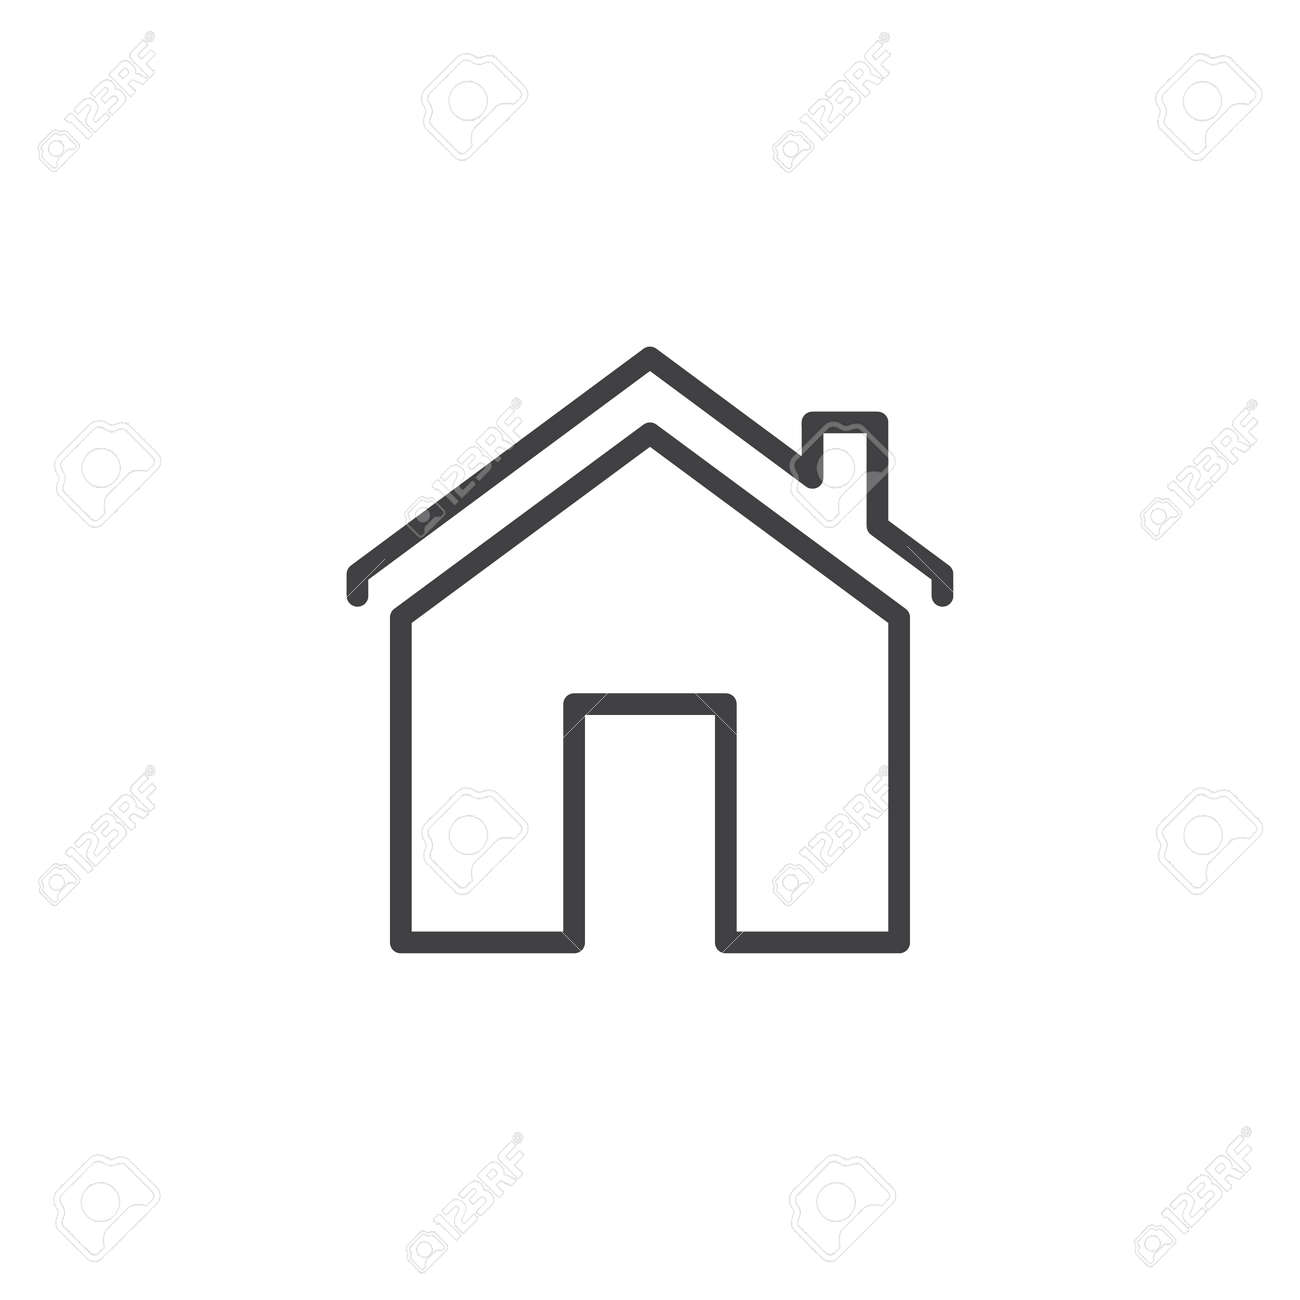 House With Chimney Outline Icon Linear Style Sign For Mobile Royalty Free Cliparts Vectors And Stock Illustration Image 102804045